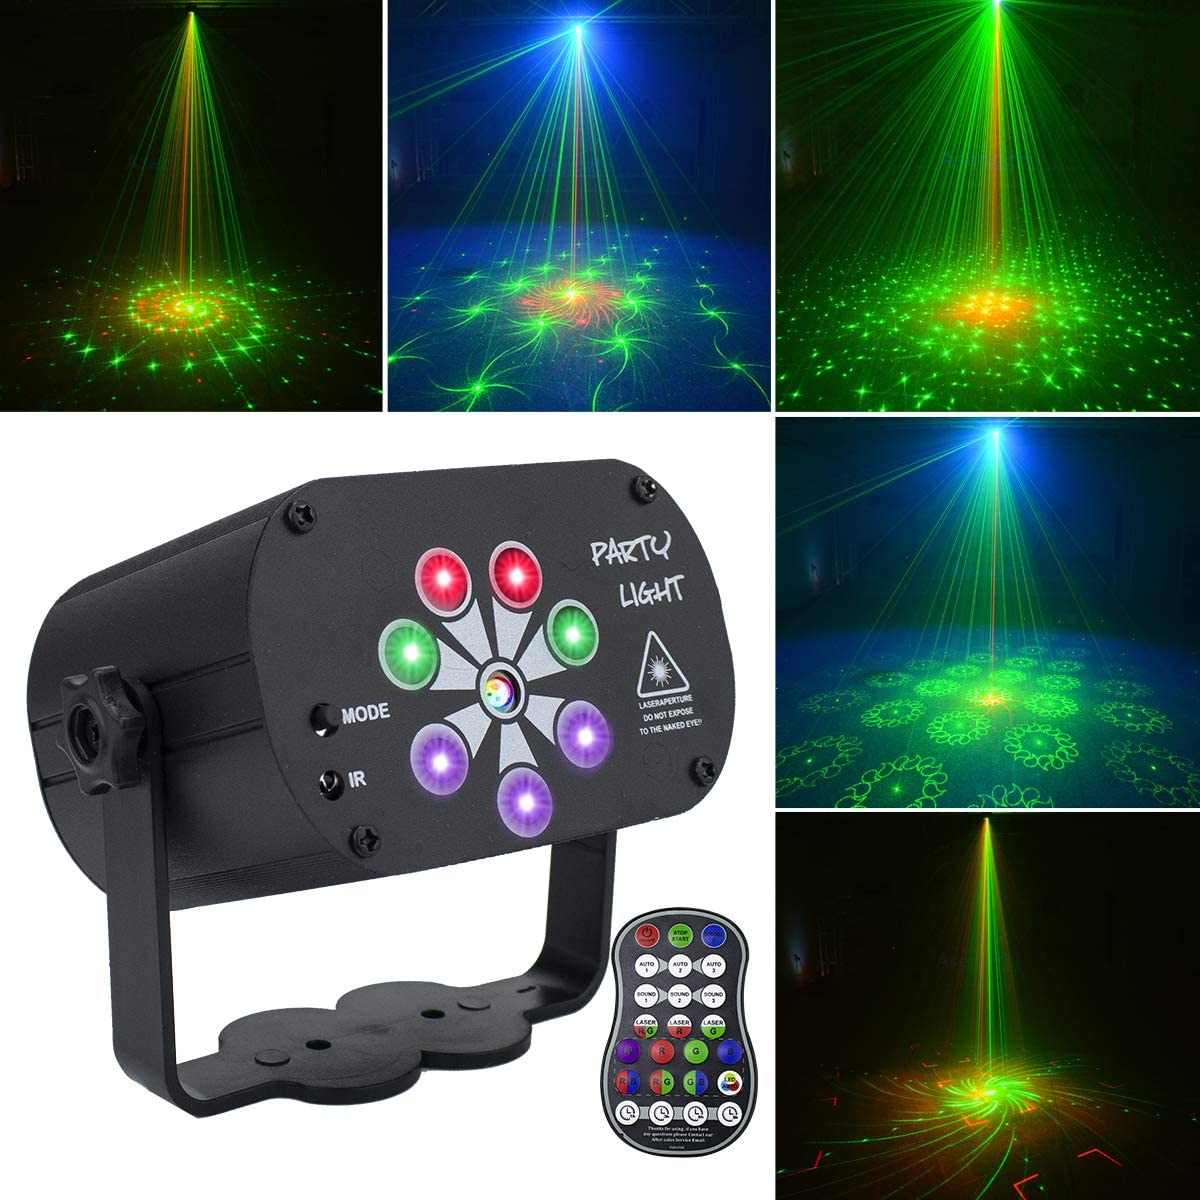 LED Stage Light LED Disco Lights RGB Beam Lights Sound Activated DJ Party Lights with Strobe Flash Effects, LED Stage Light Projector with Timing Remote Control for Home Birthday Dance Party